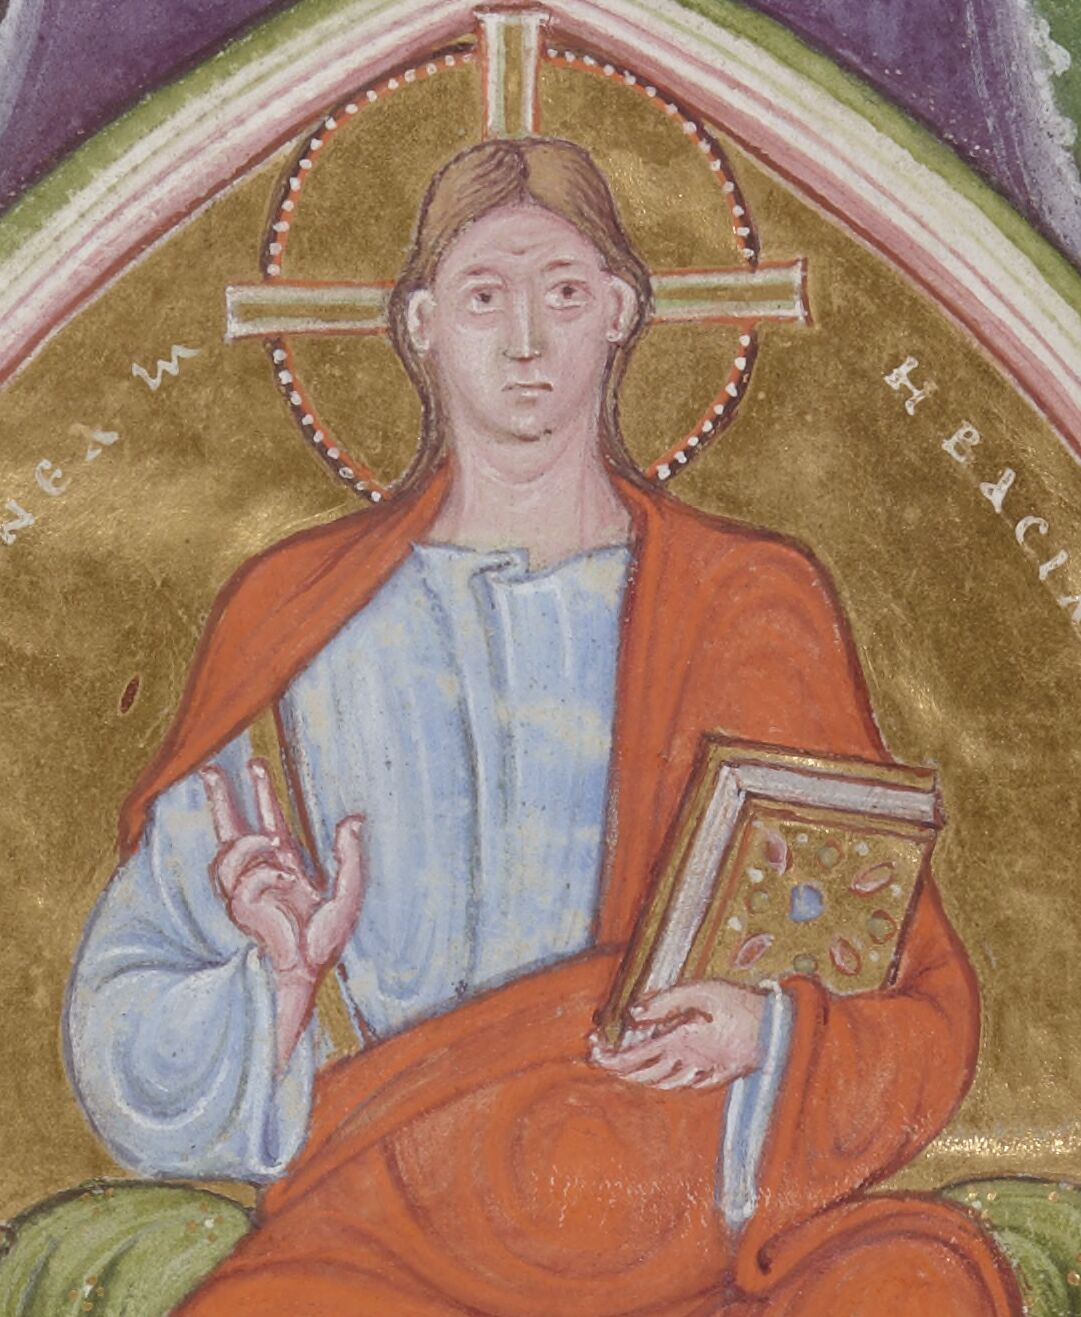 Jesus holds a book